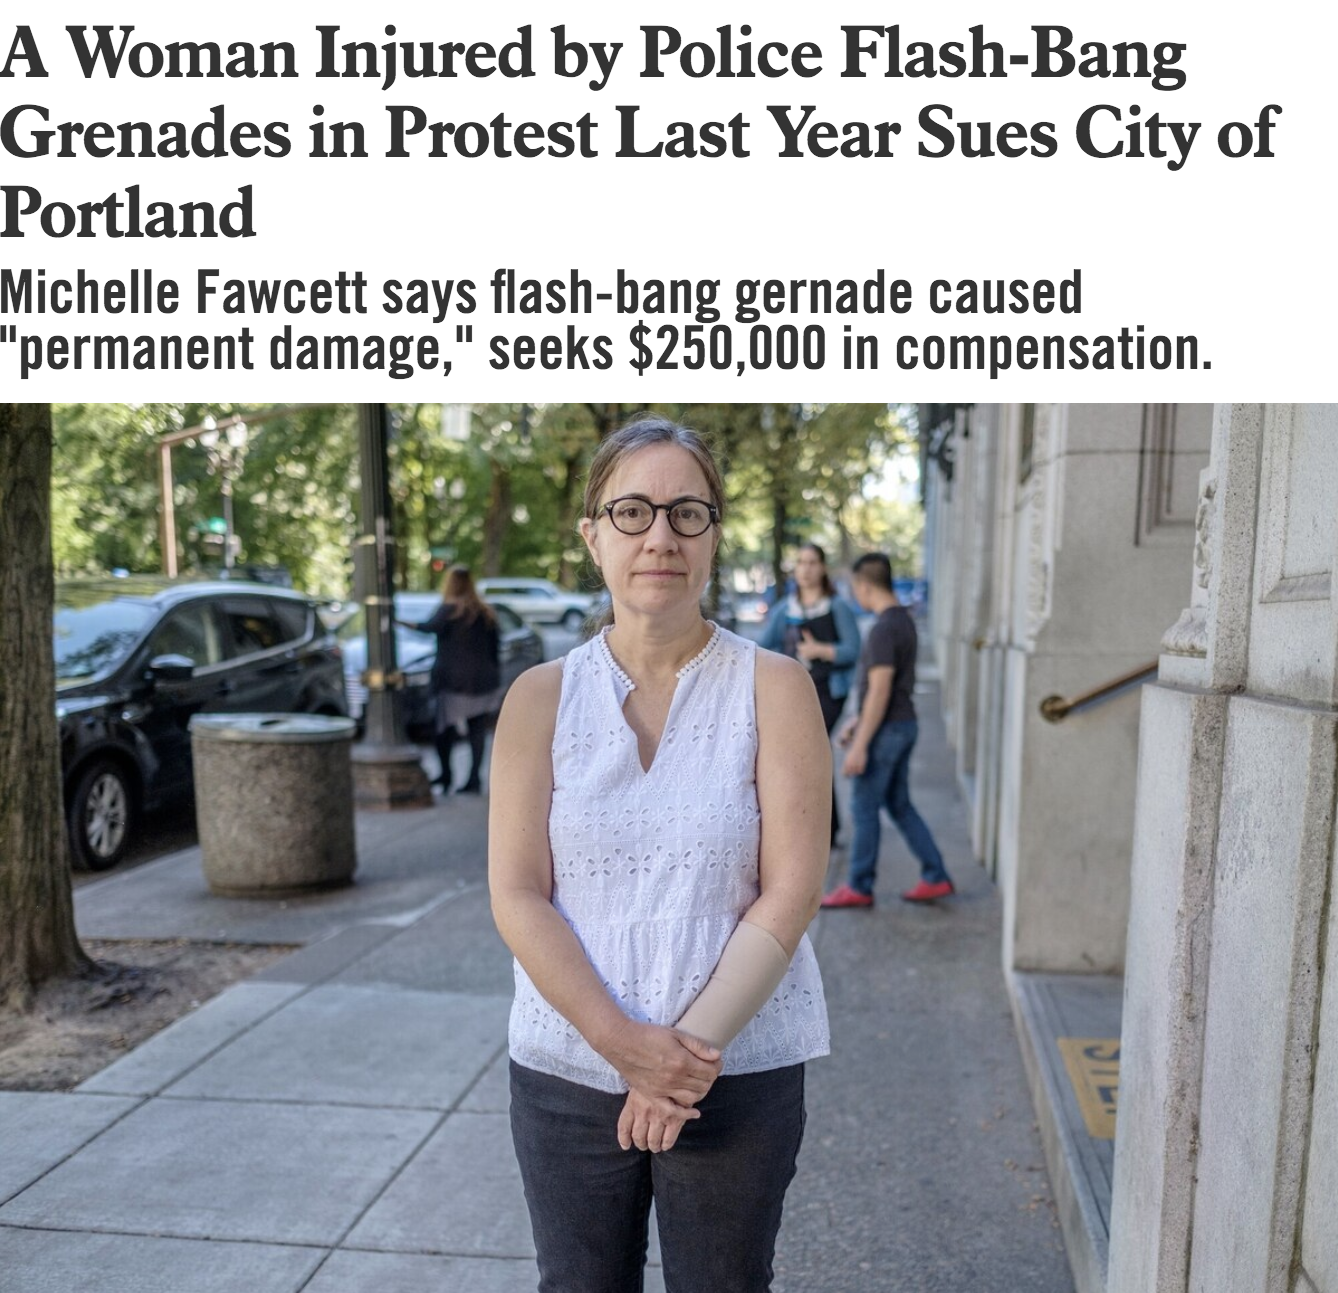 """Willamette Week : """" A Woman Injured by Police Flash-Bang Grenades in Protest Last Year Sues City of Portland """""""